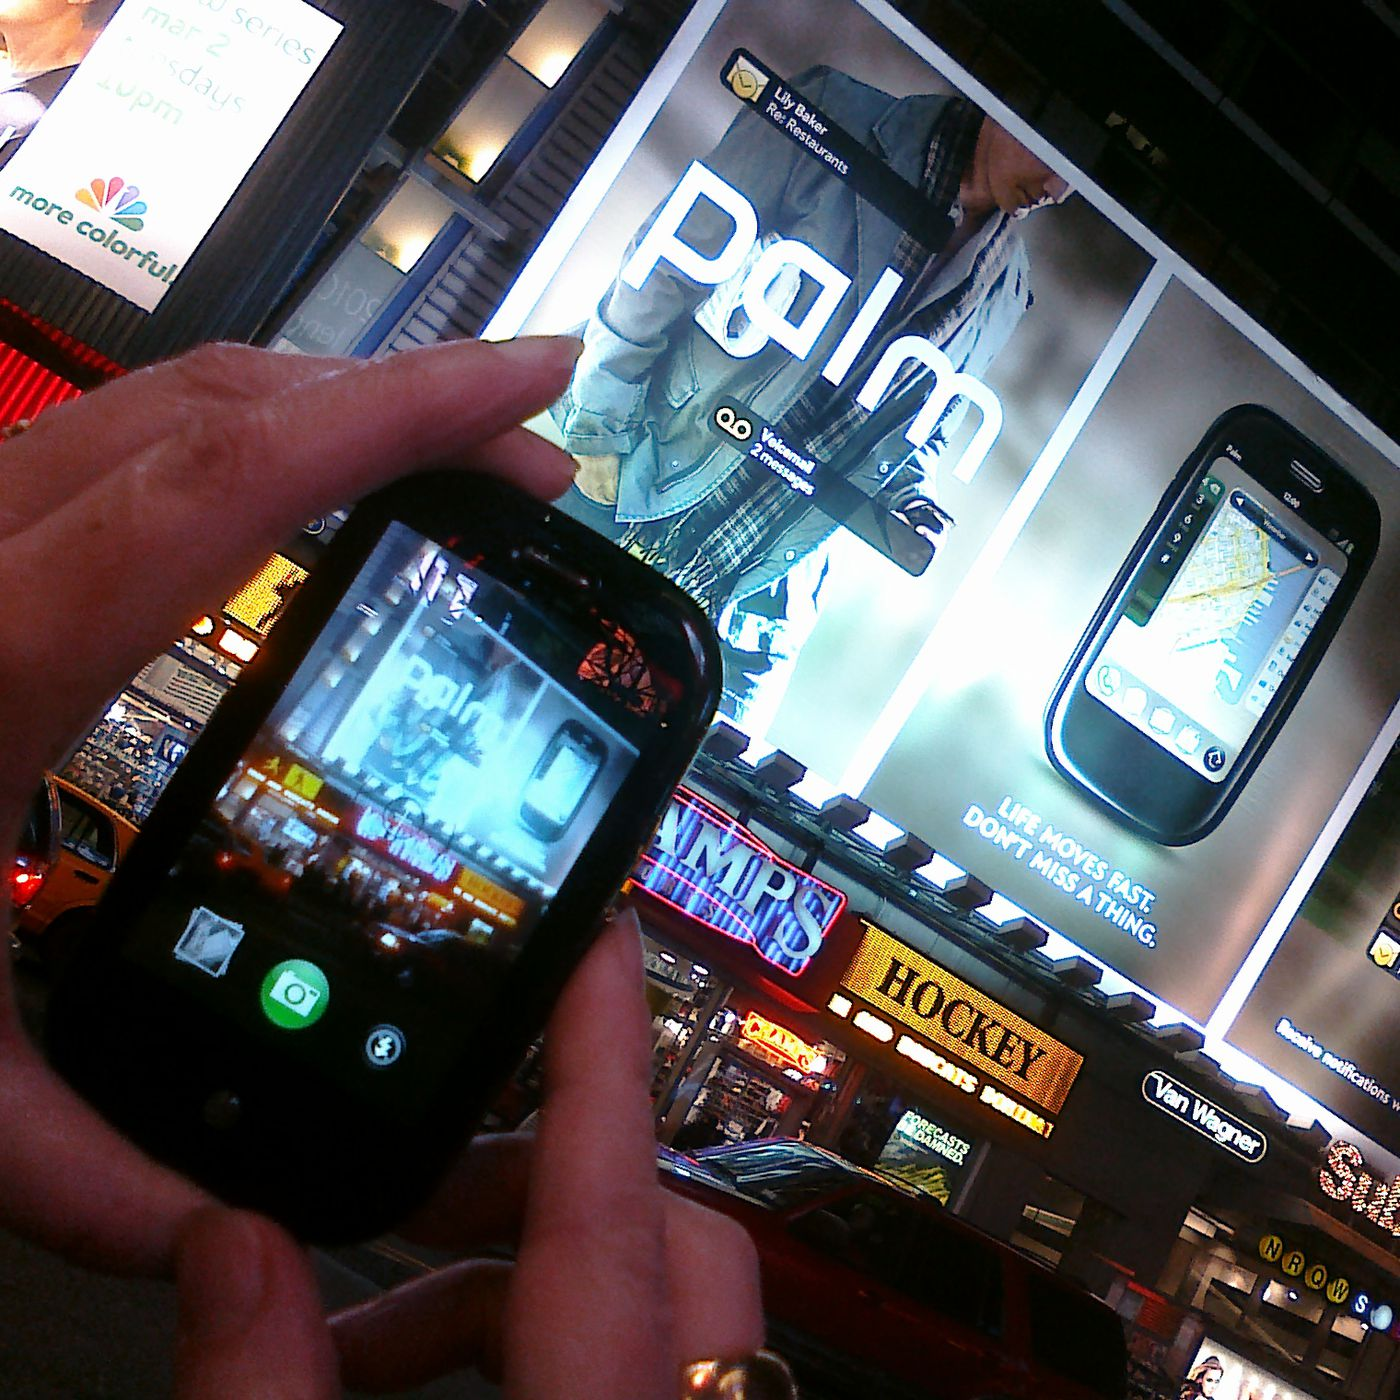 Top Free Games You Can Play on Palm OS